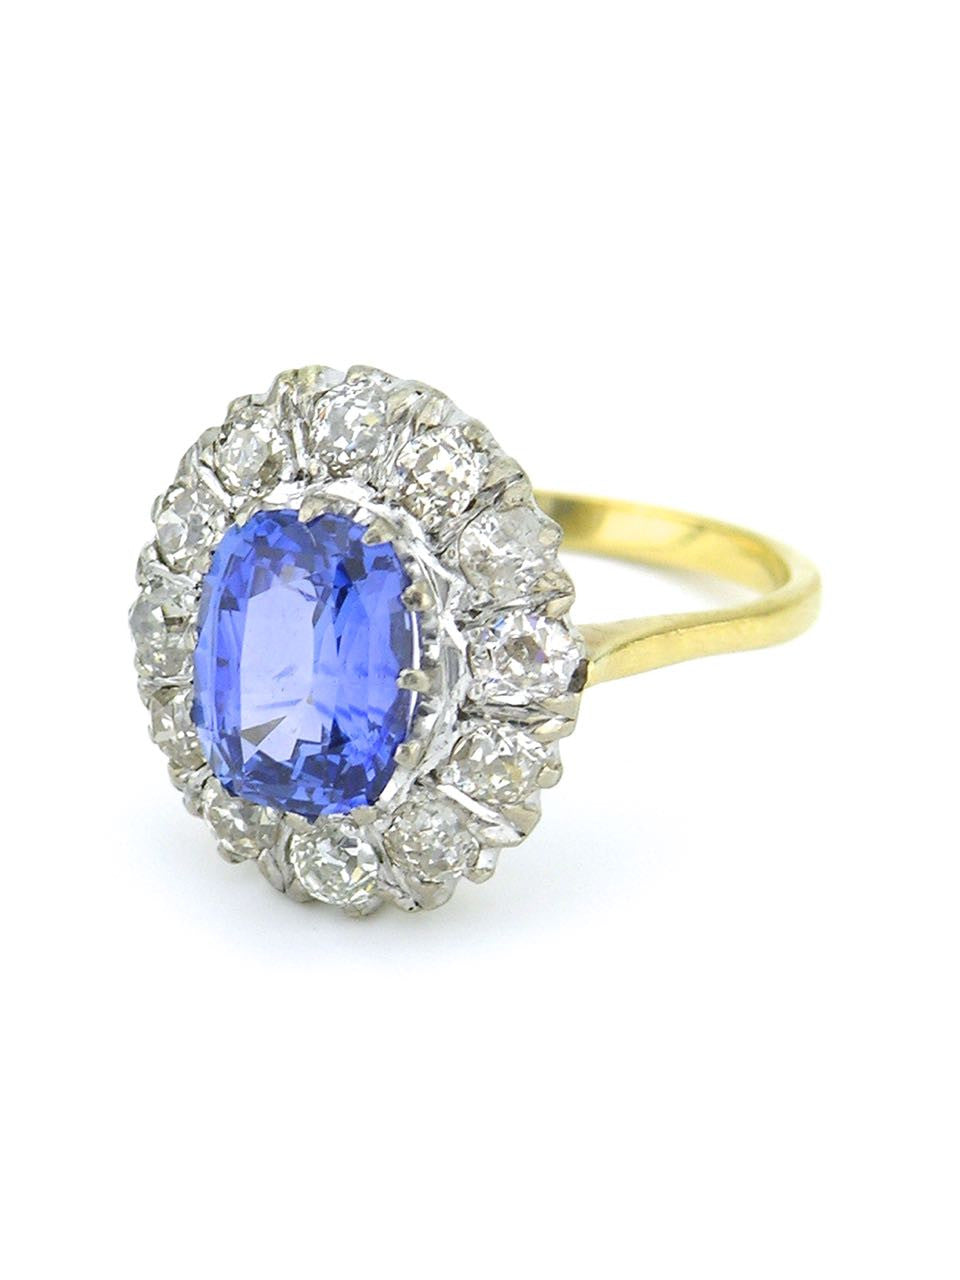 18k white and yellow gold diamond and sapphire ring